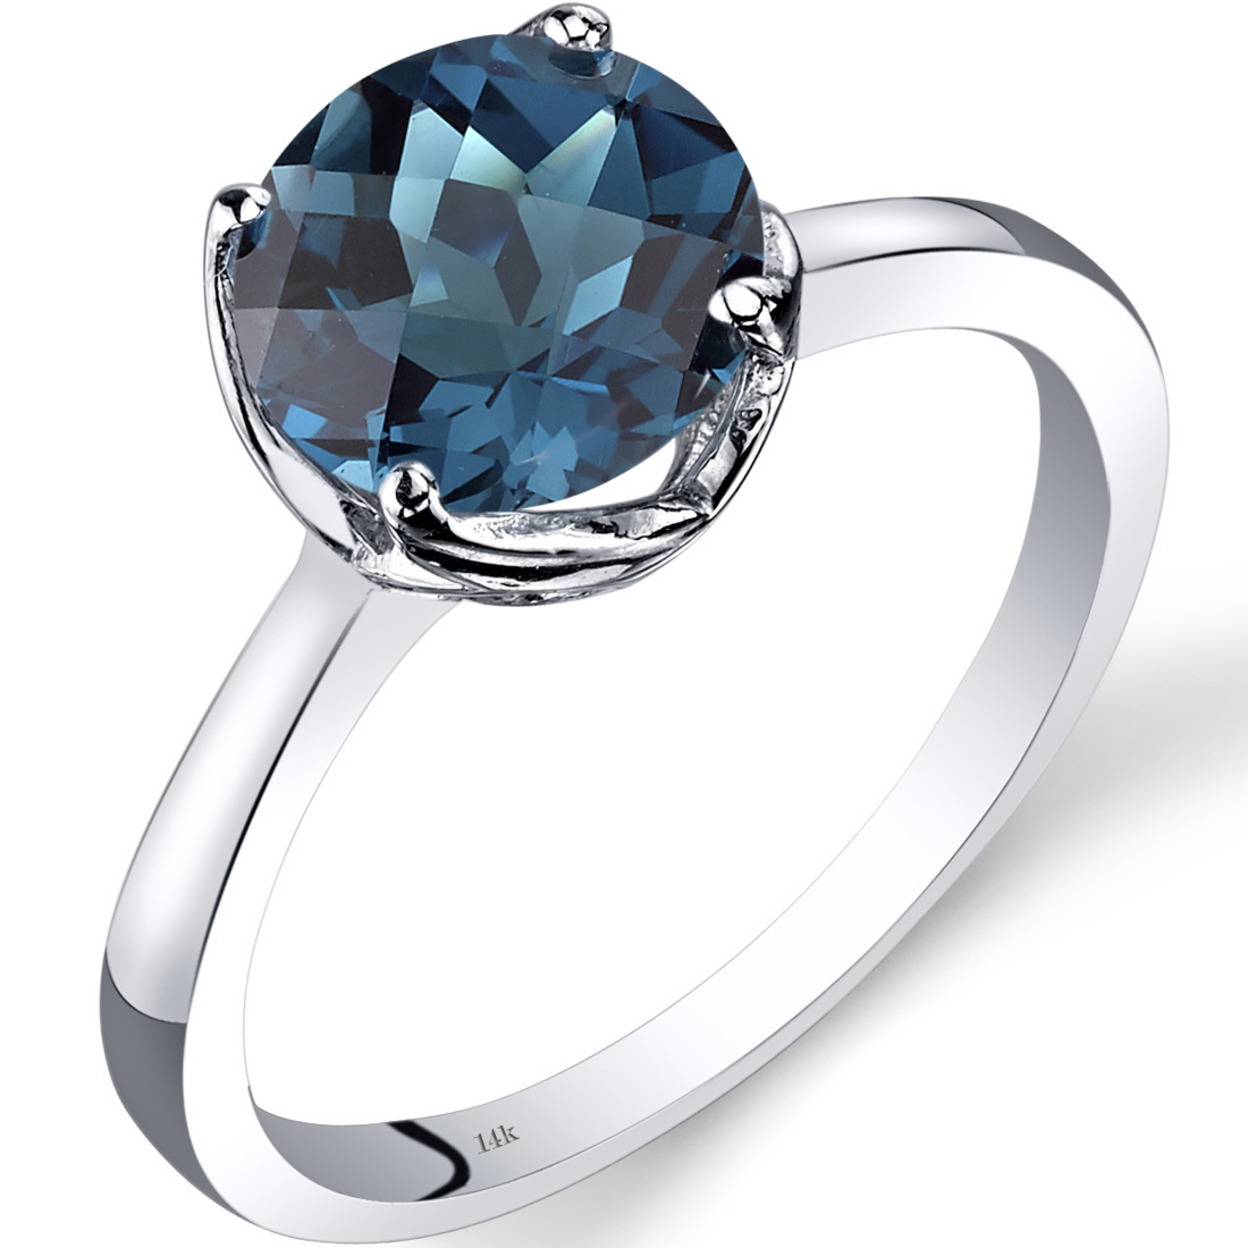 14k White Gold London Blue Topaz Solitaire Ring 2.25 Carat Checkerboard Cut R62210